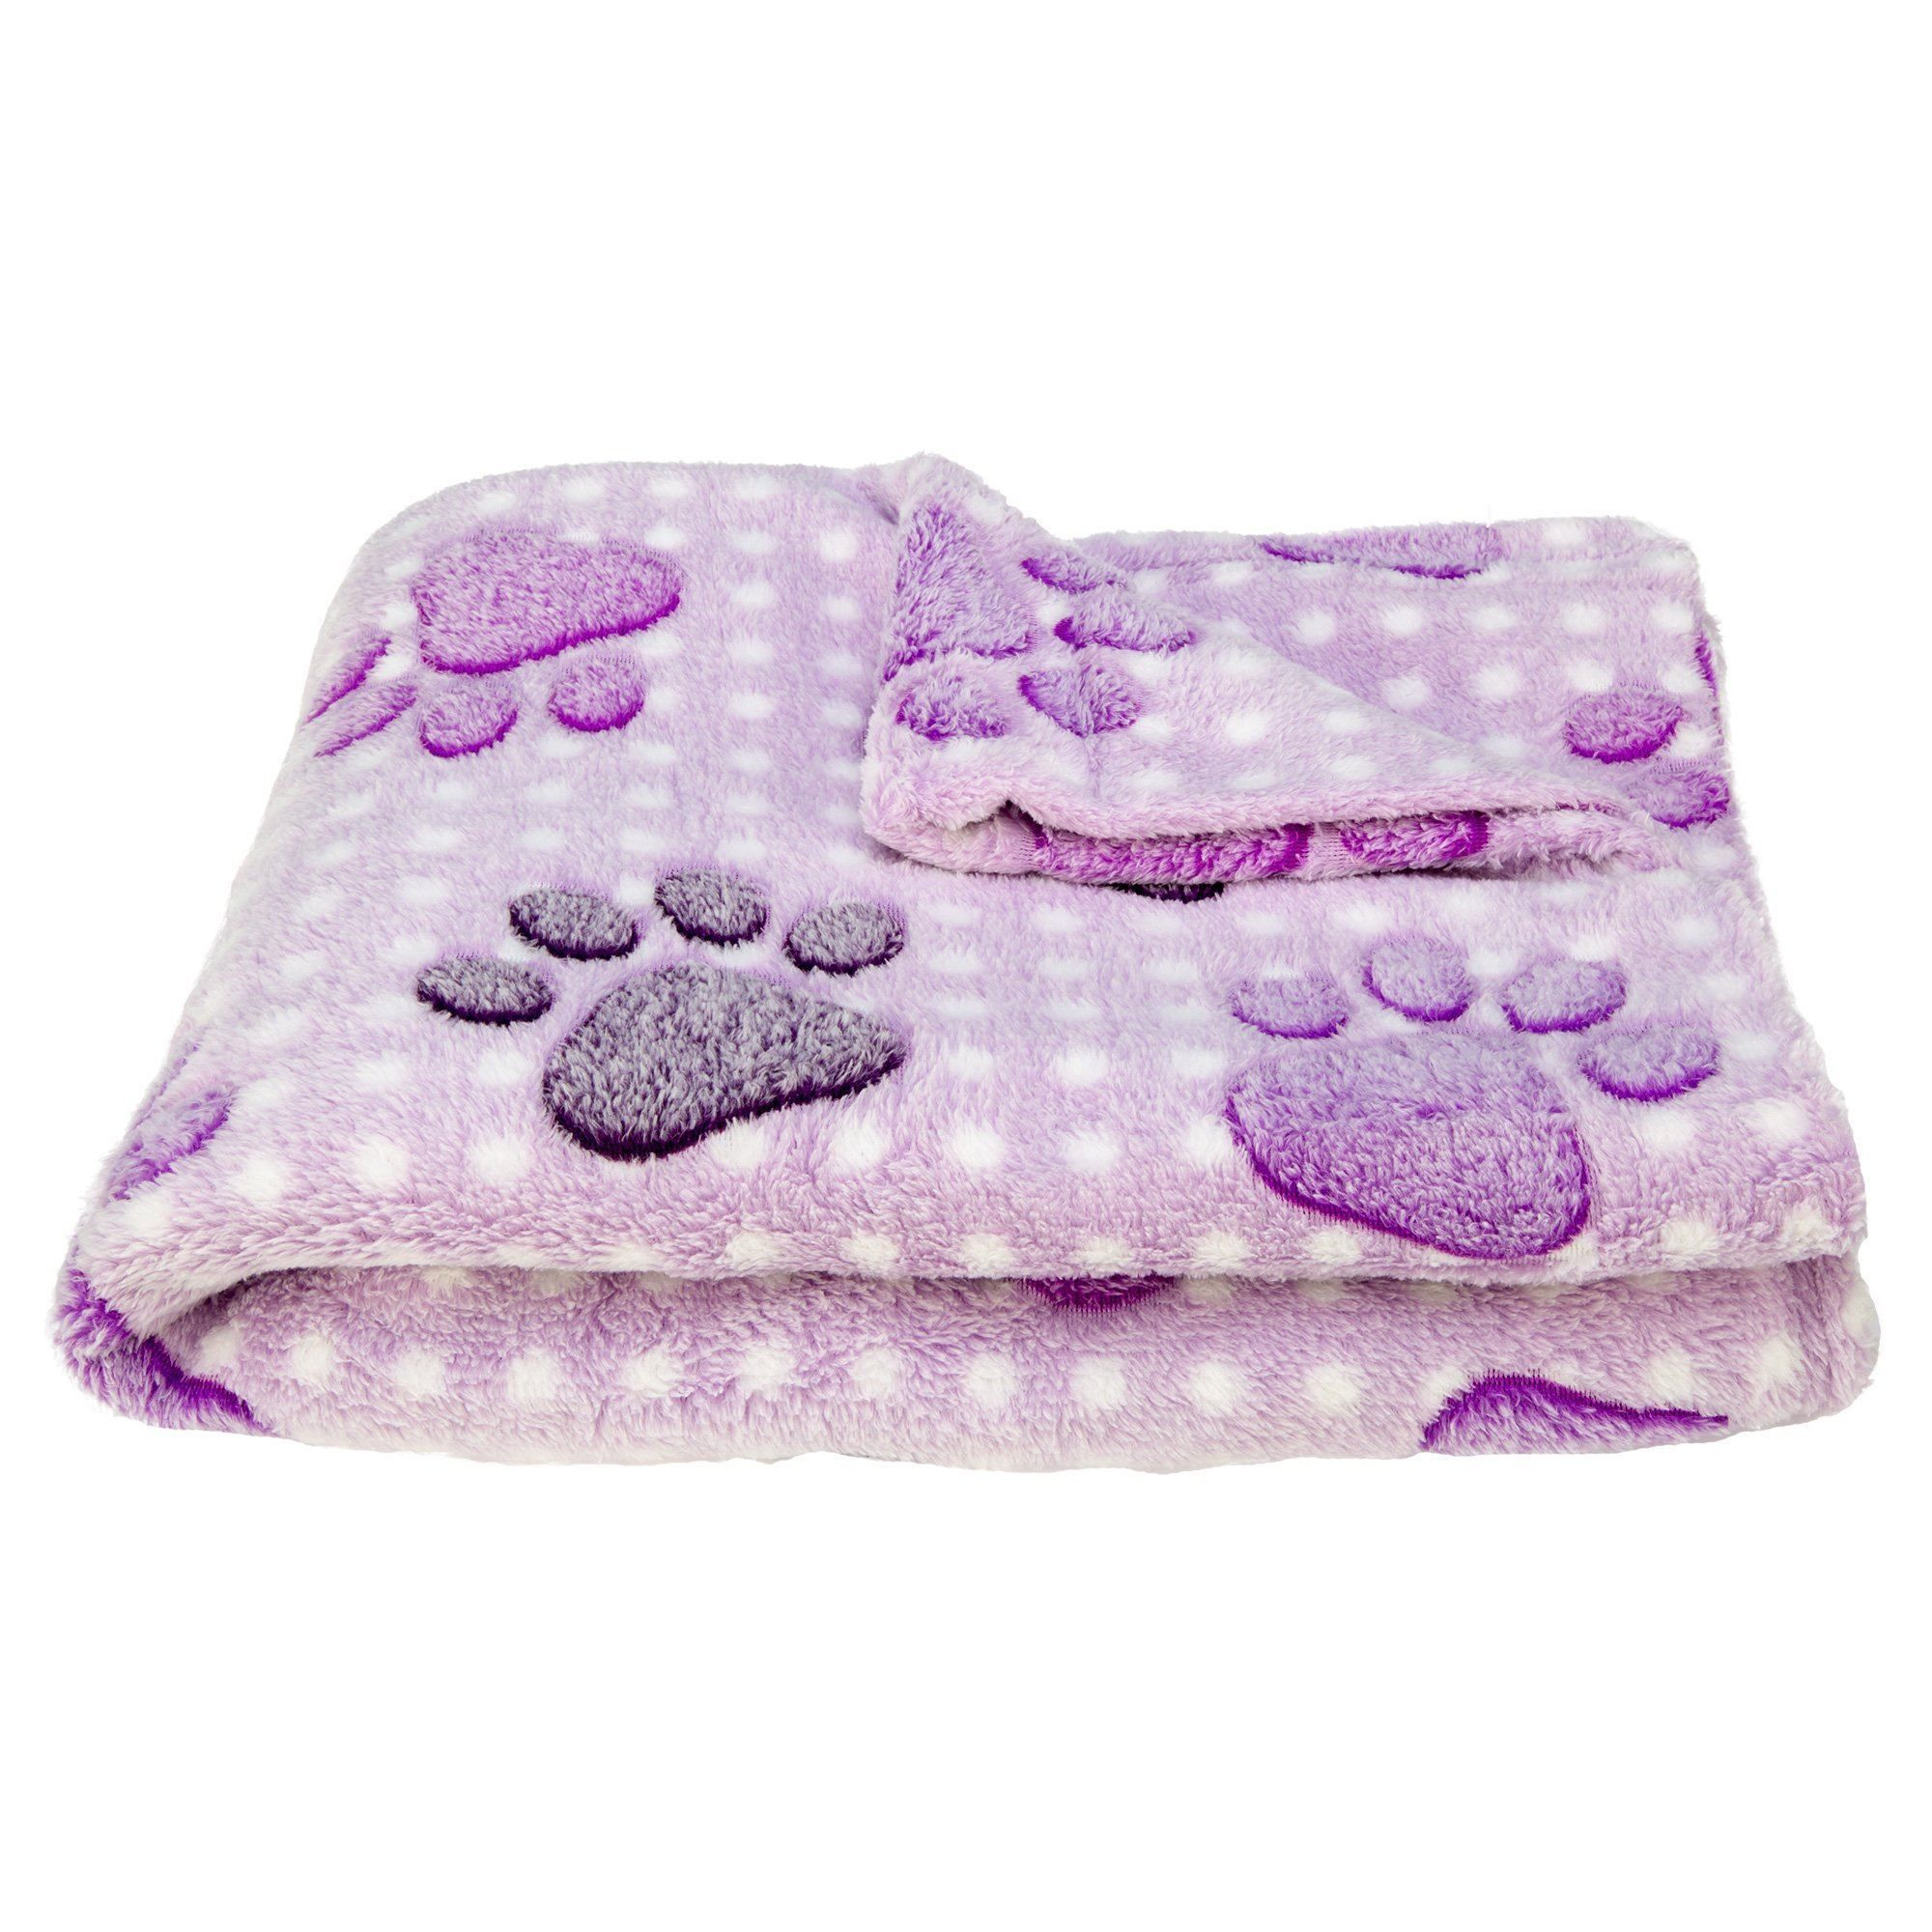 Super Cozy™ Fleece Paw Print Throw Blanket in 2020 Paw